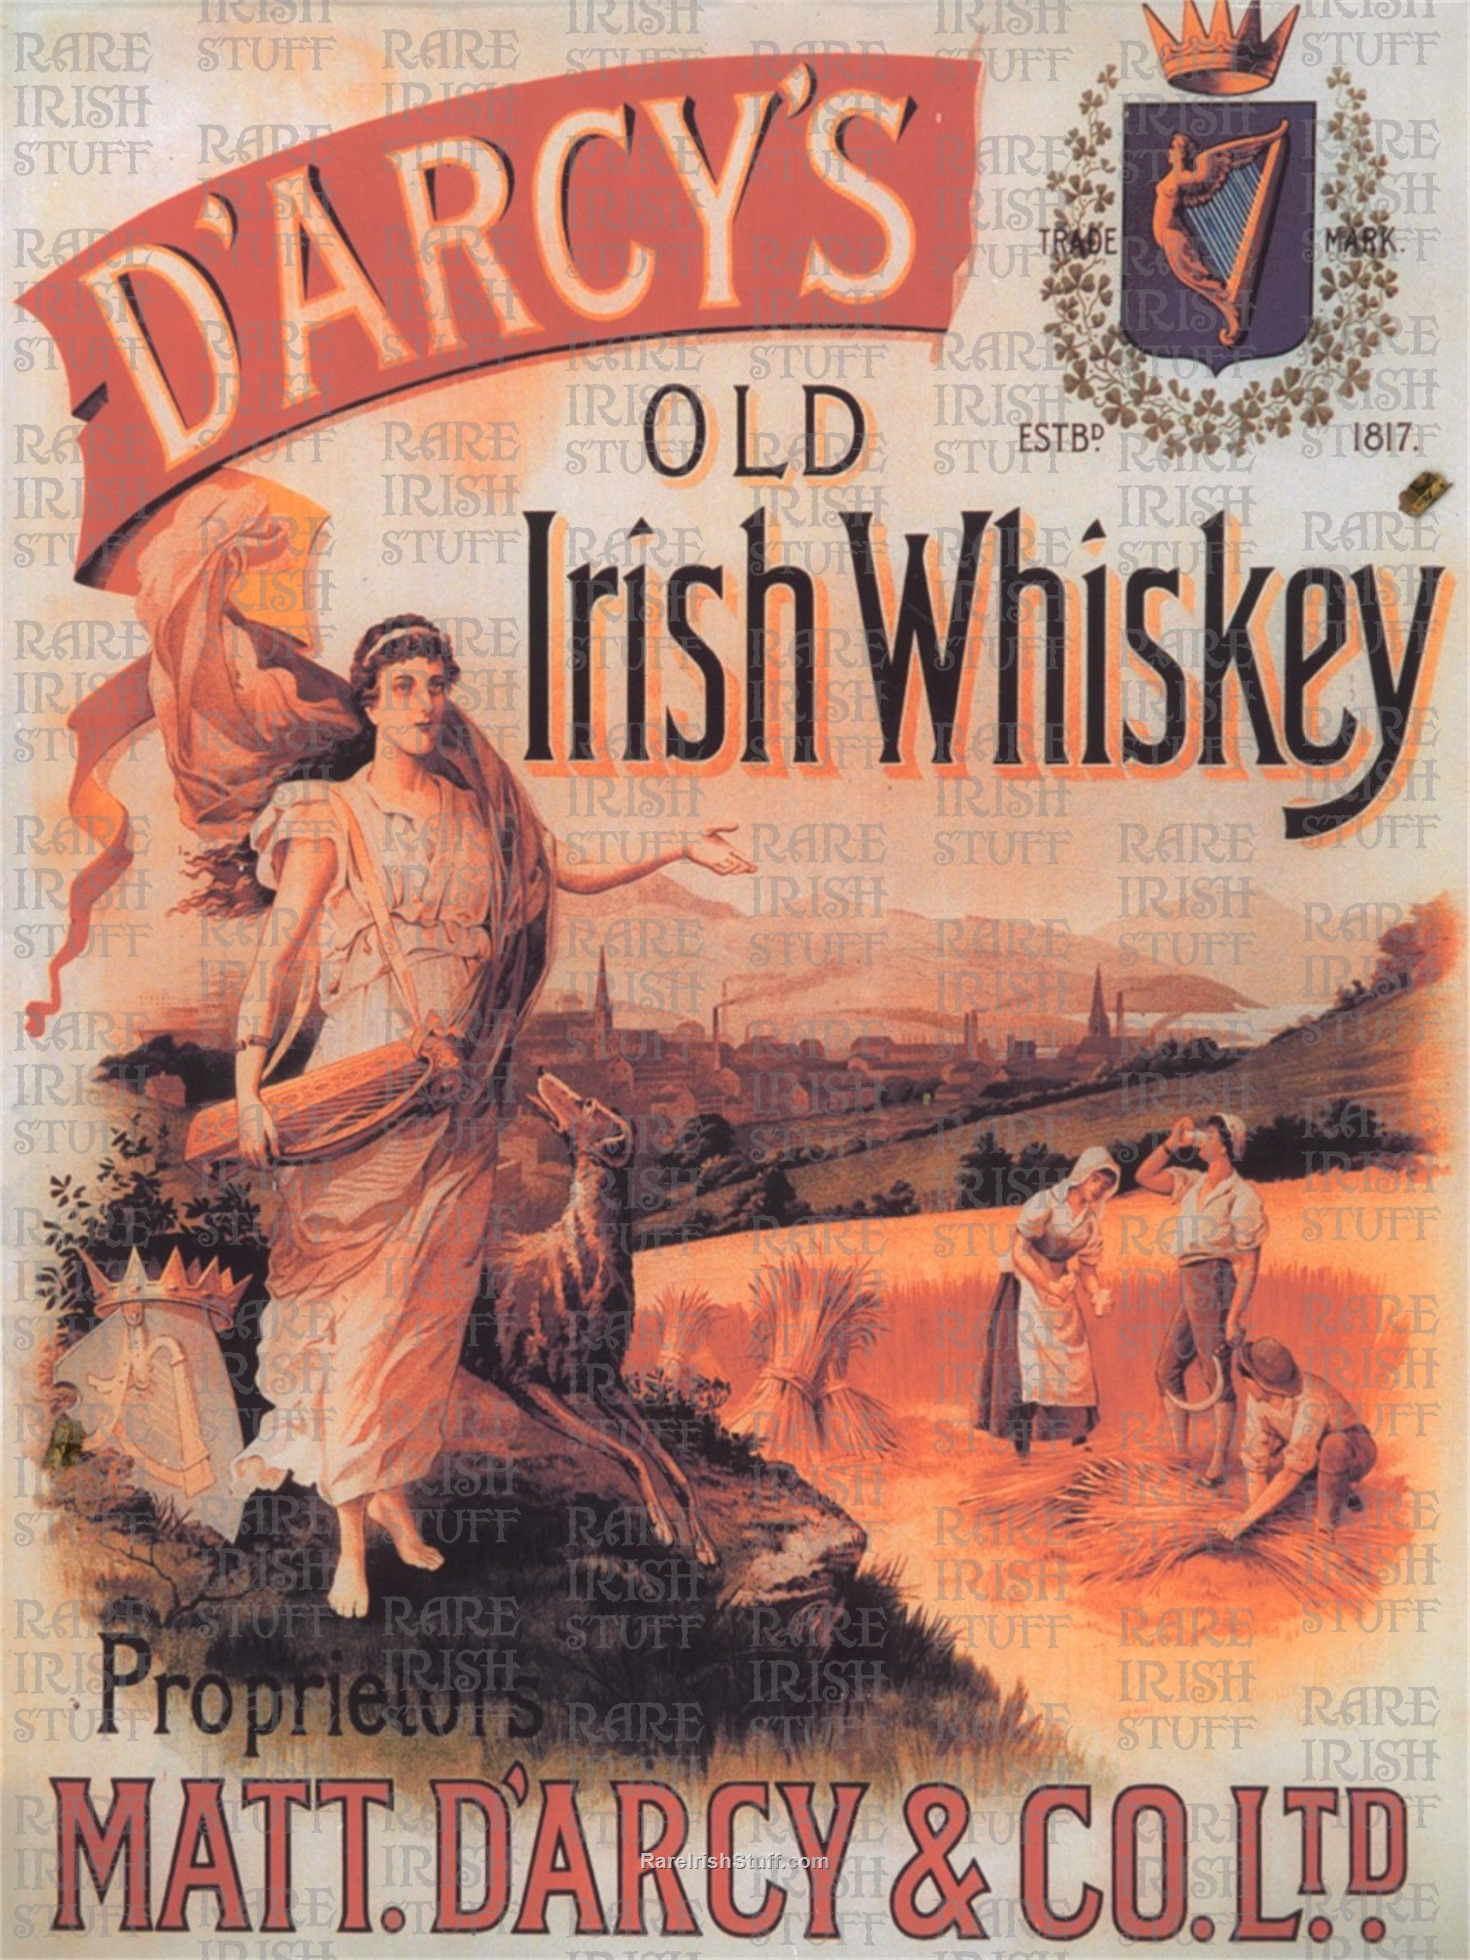 Darcys  Old  Irish  Whiskey2  Thumbnail0